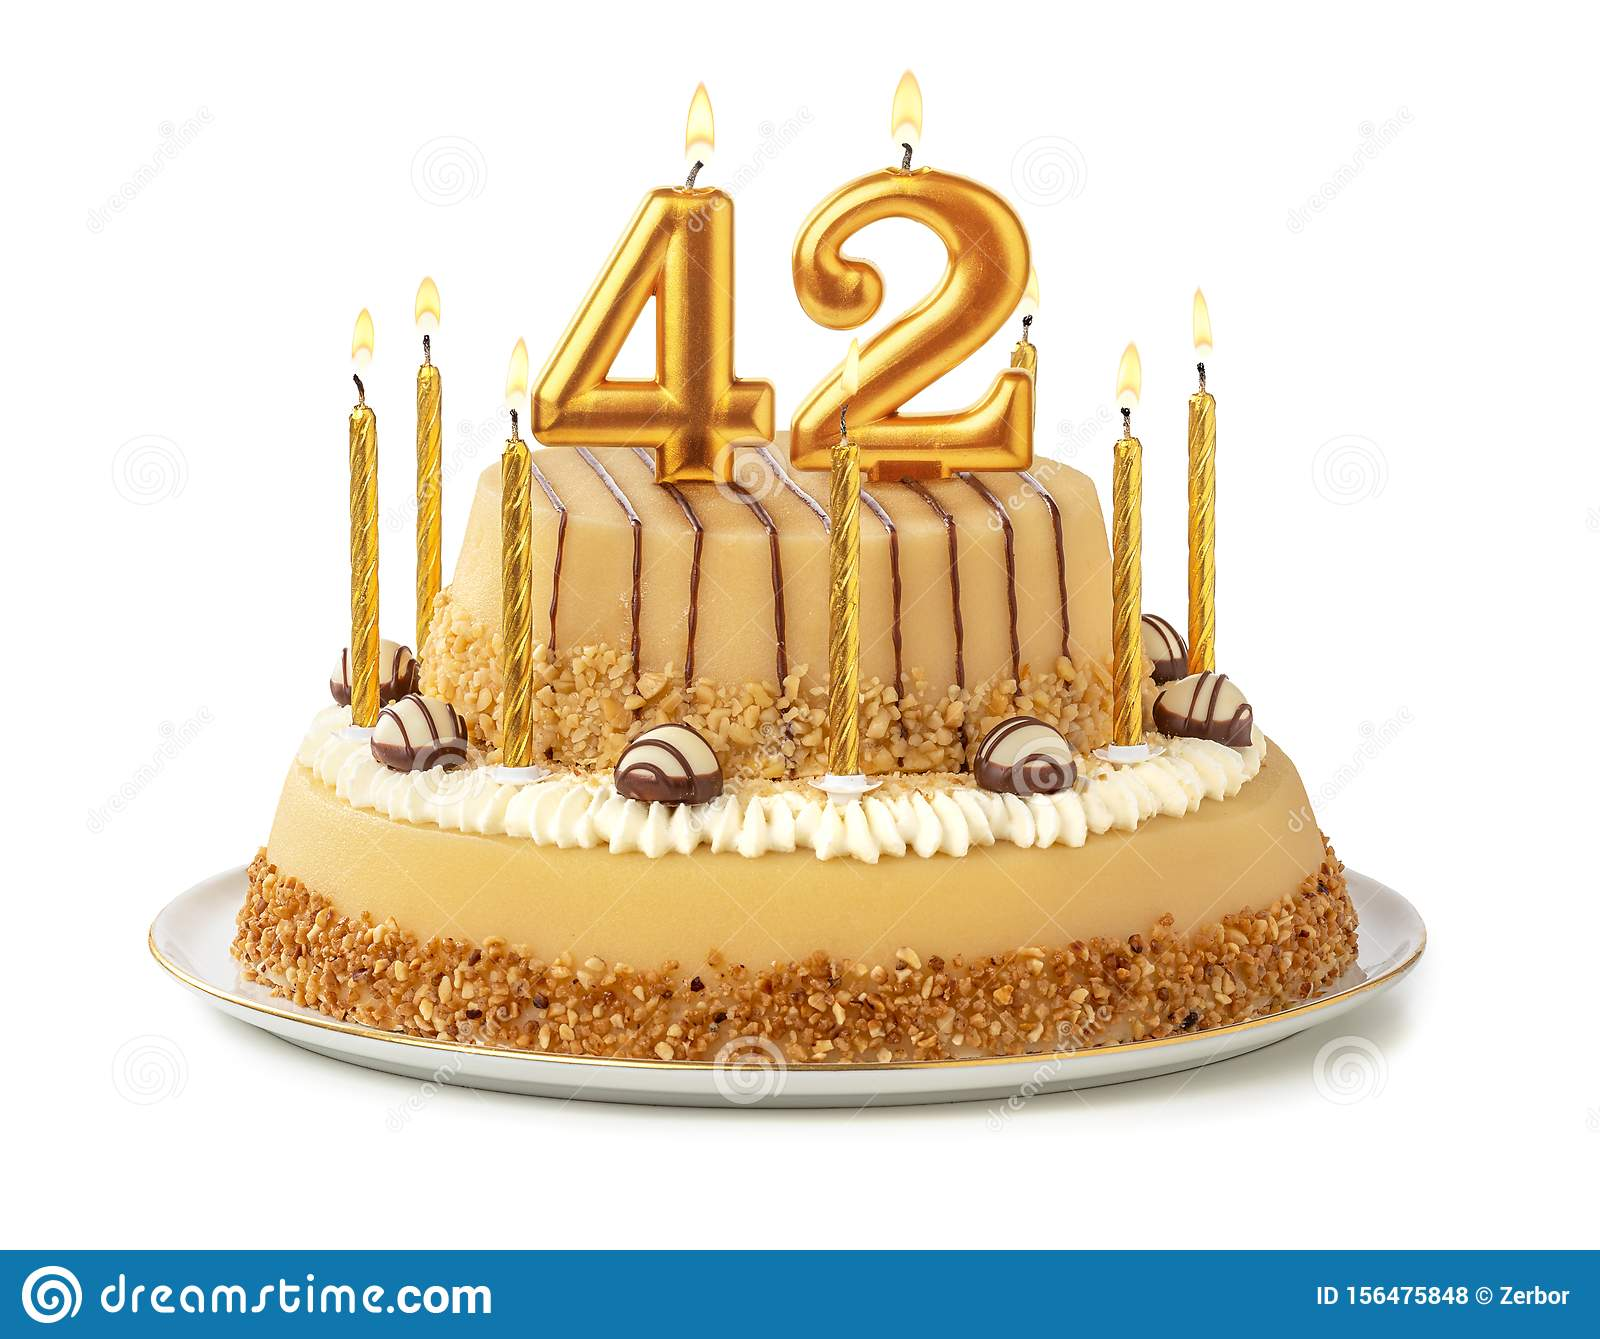 Marvelous Festive Cake With Golden Candles Number 42 Stock Photo Image Funny Birthday Cards Online Fluifree Goldxyz